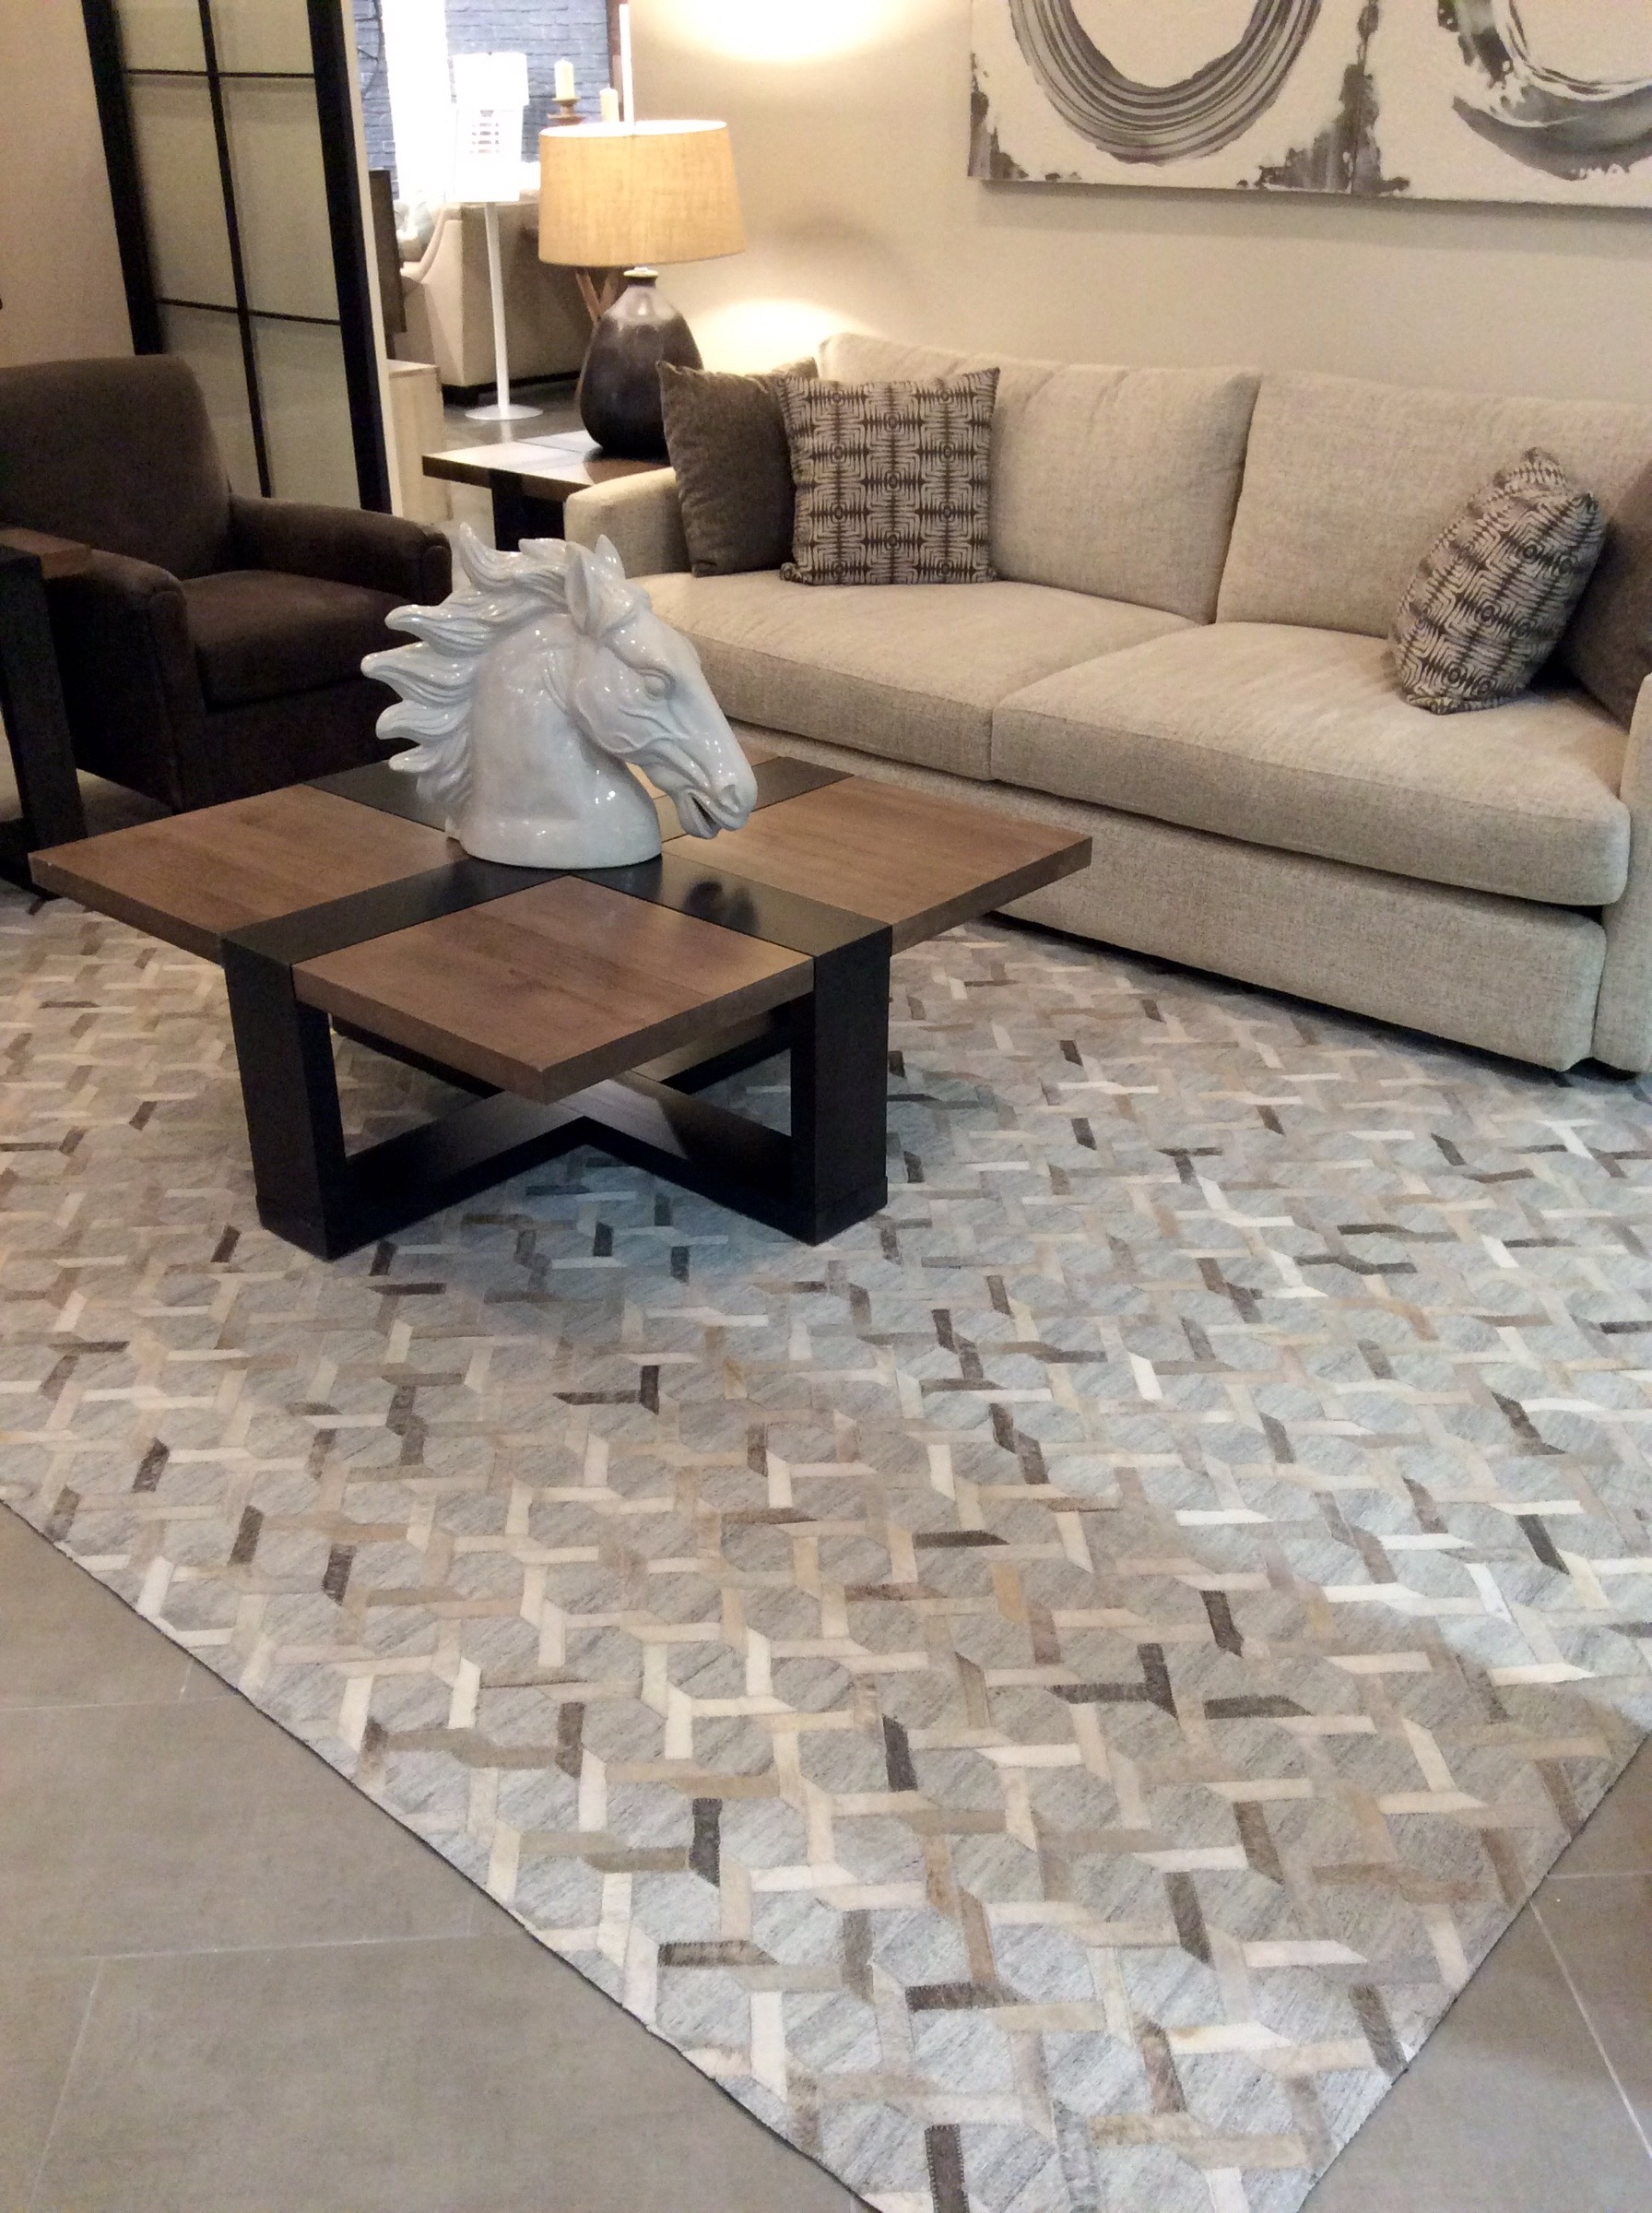 Superb The Beautiful Interlinked Design In This Rug Really Stands Out And Keeps  Your Eyes Roaming The Rug, And Will Look Amazing In Your Setting As You Can  See In ...